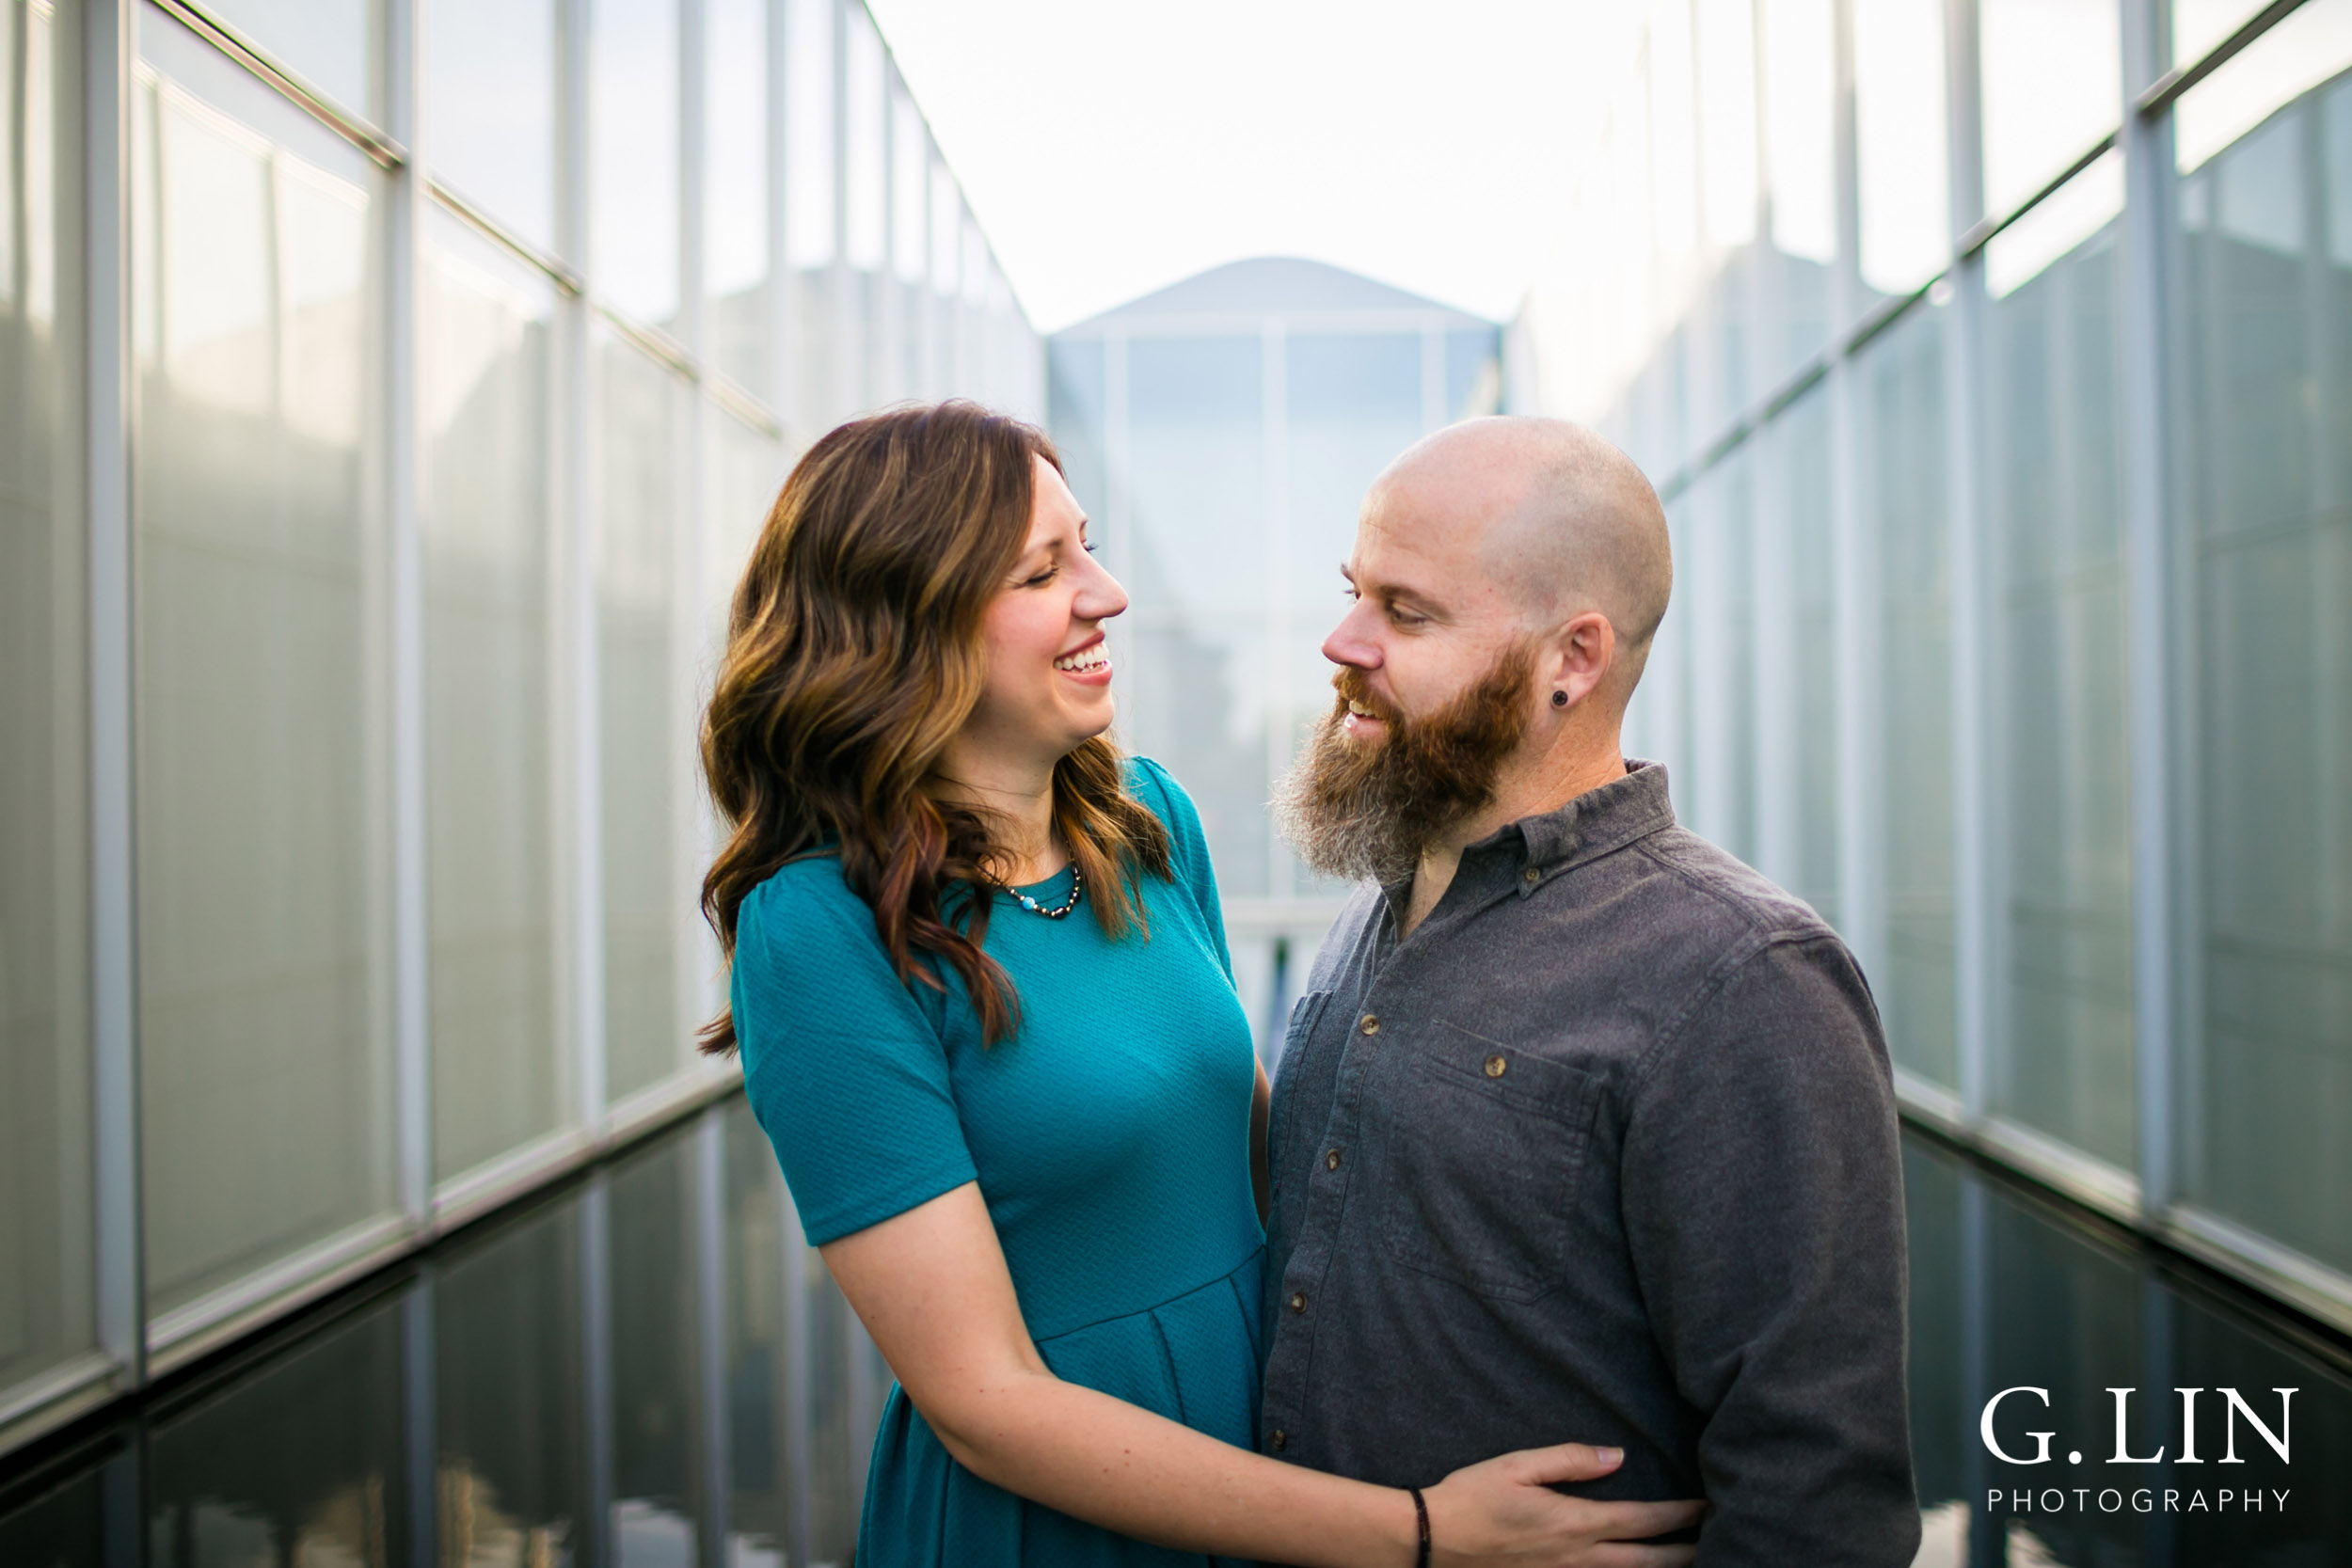 Raleigh Family Photographer | G. Lin Photography |  Modern photo of couple